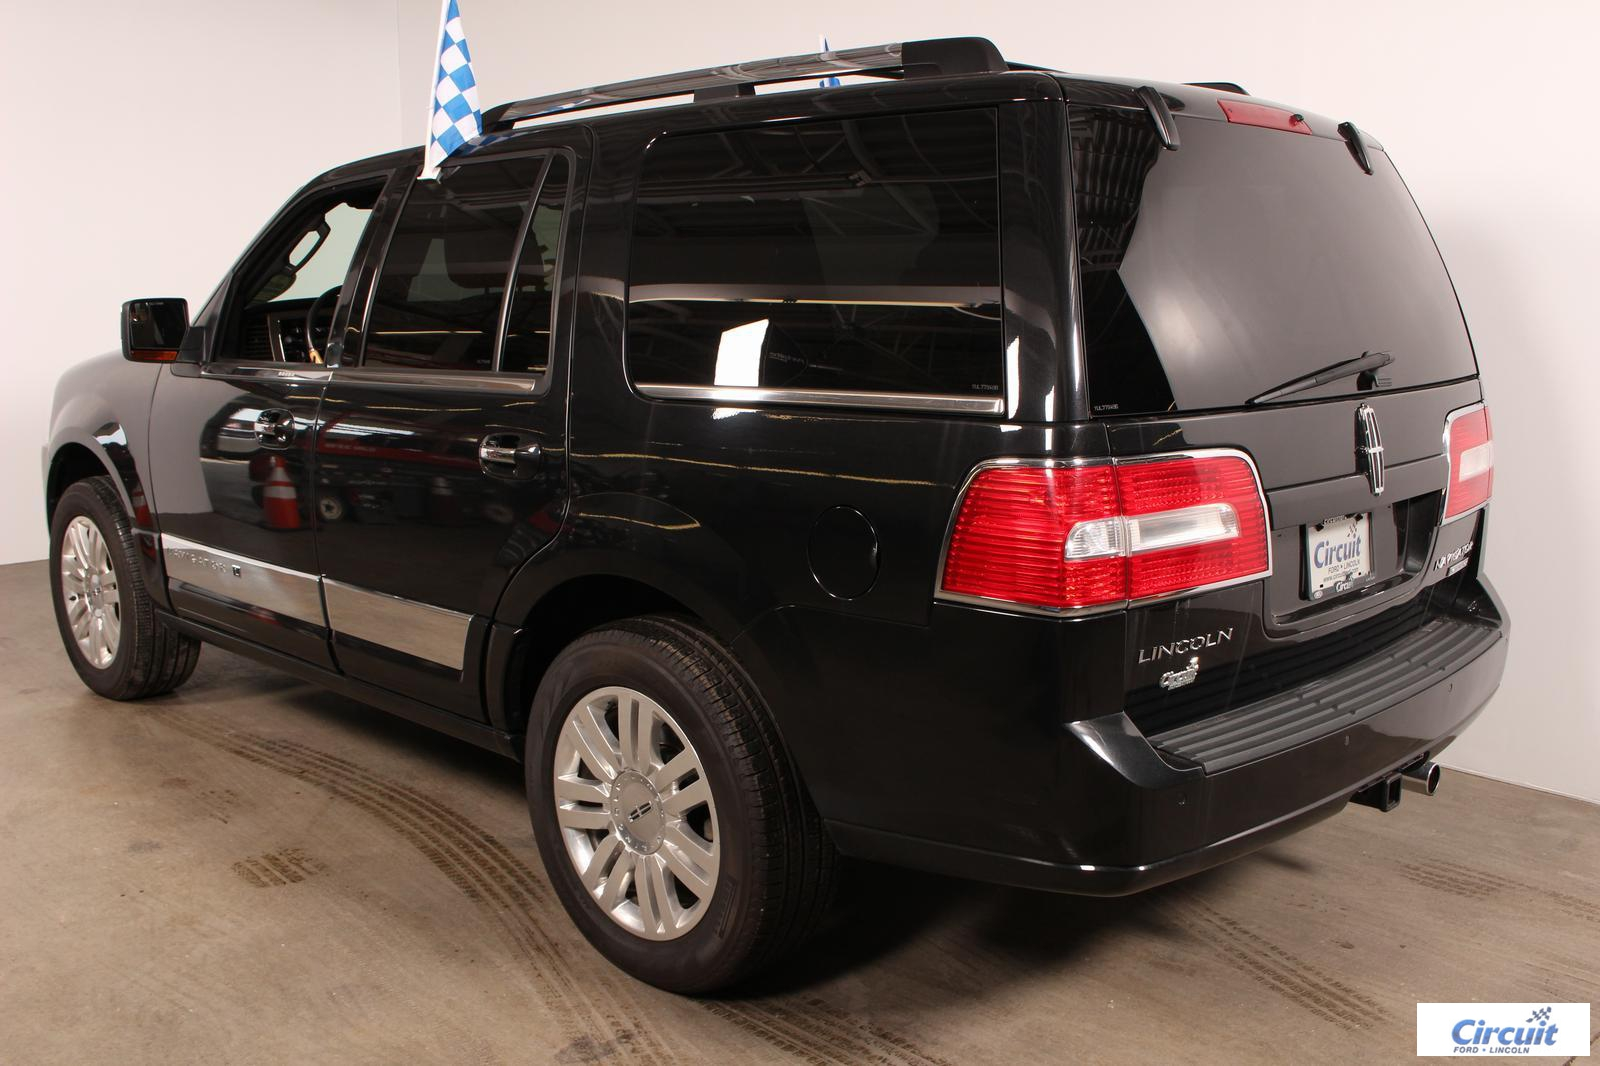 lincoln navigator 2013 used for sale circuit ford lincoln. Black Bedroom Furniture Sets. Home Design Ideas